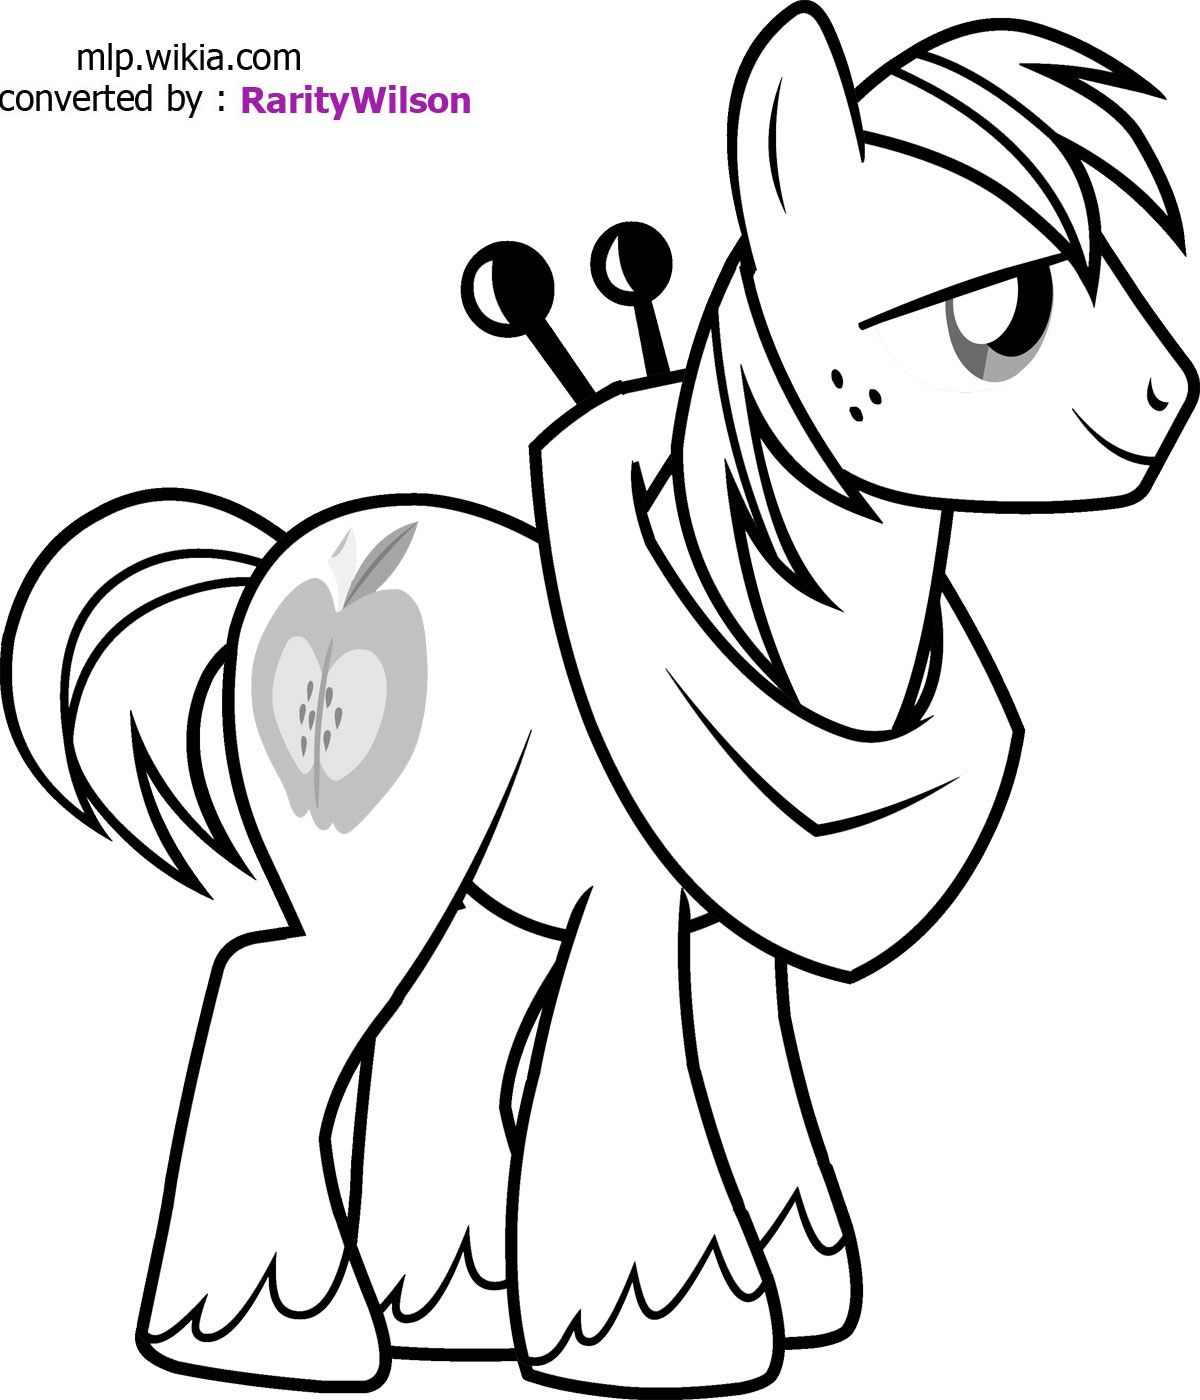 mlp printable coloring pages | my little pony Big Macintosh coloring ...